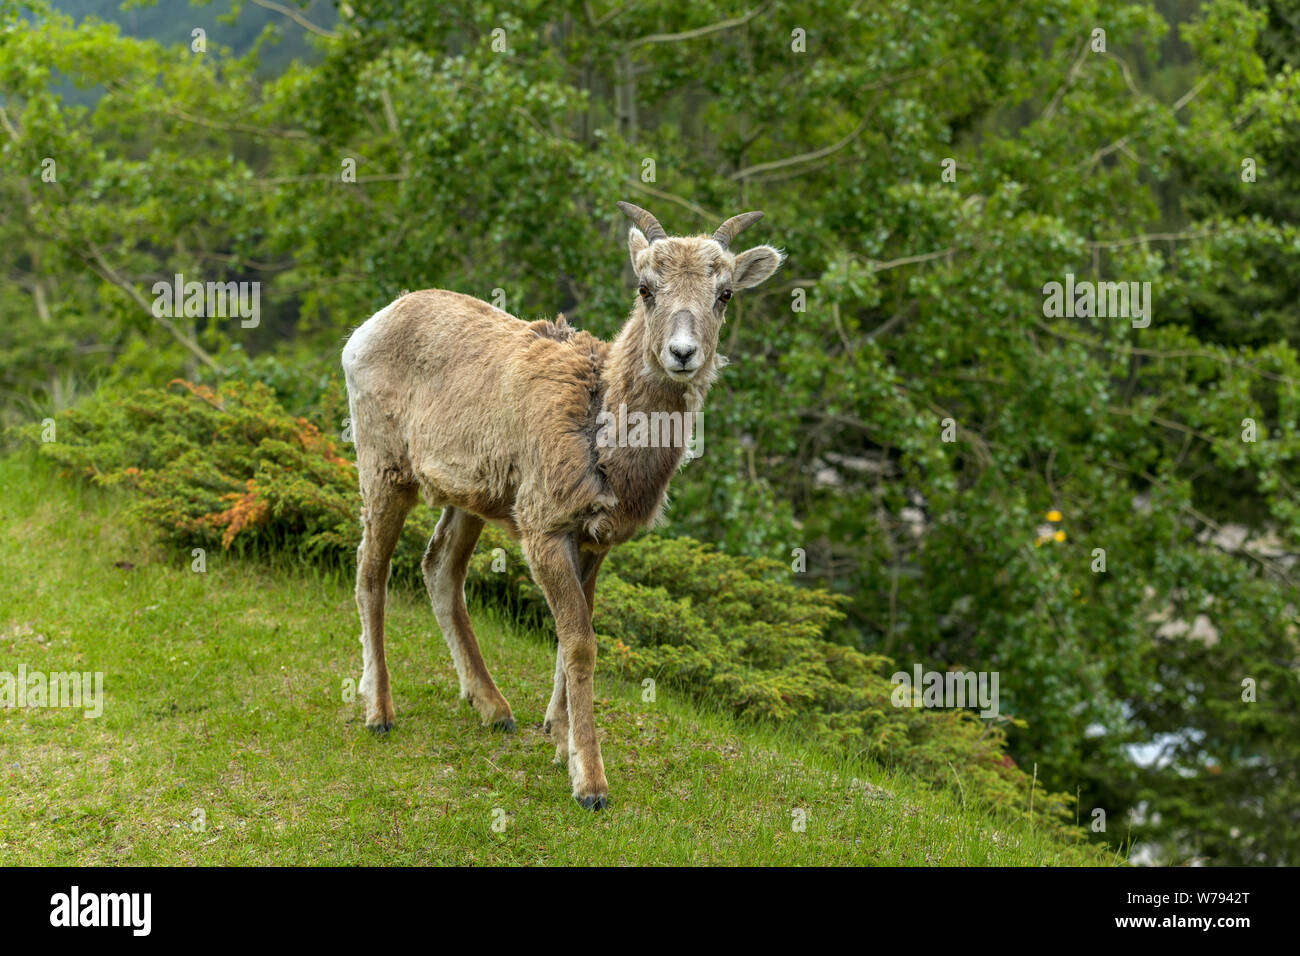 Spring Mountain Sheep - A young female Rocky Mountain Bighorn Sheep walking and grazing on a green meadow in Banff National Park, Alberta, Canada. Stock Photo